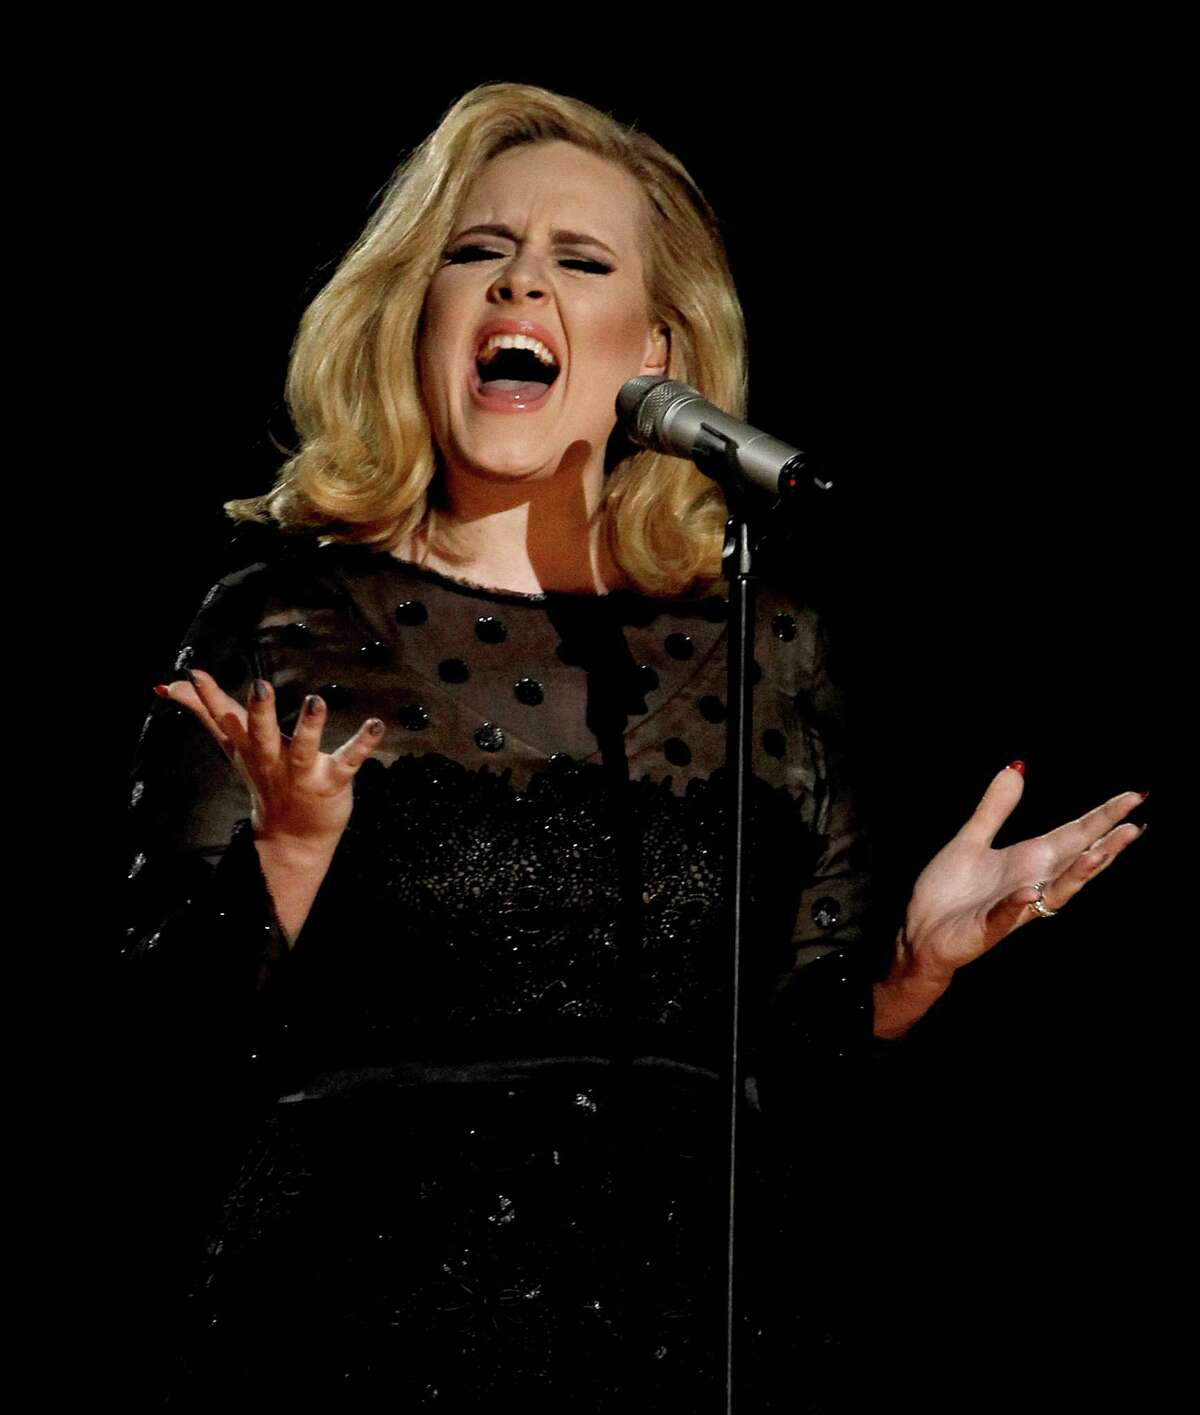 MOST DESIRABLE (Zillow)5. Adele2016 Claim to fame: Named Billboard's artist of the year for the third time